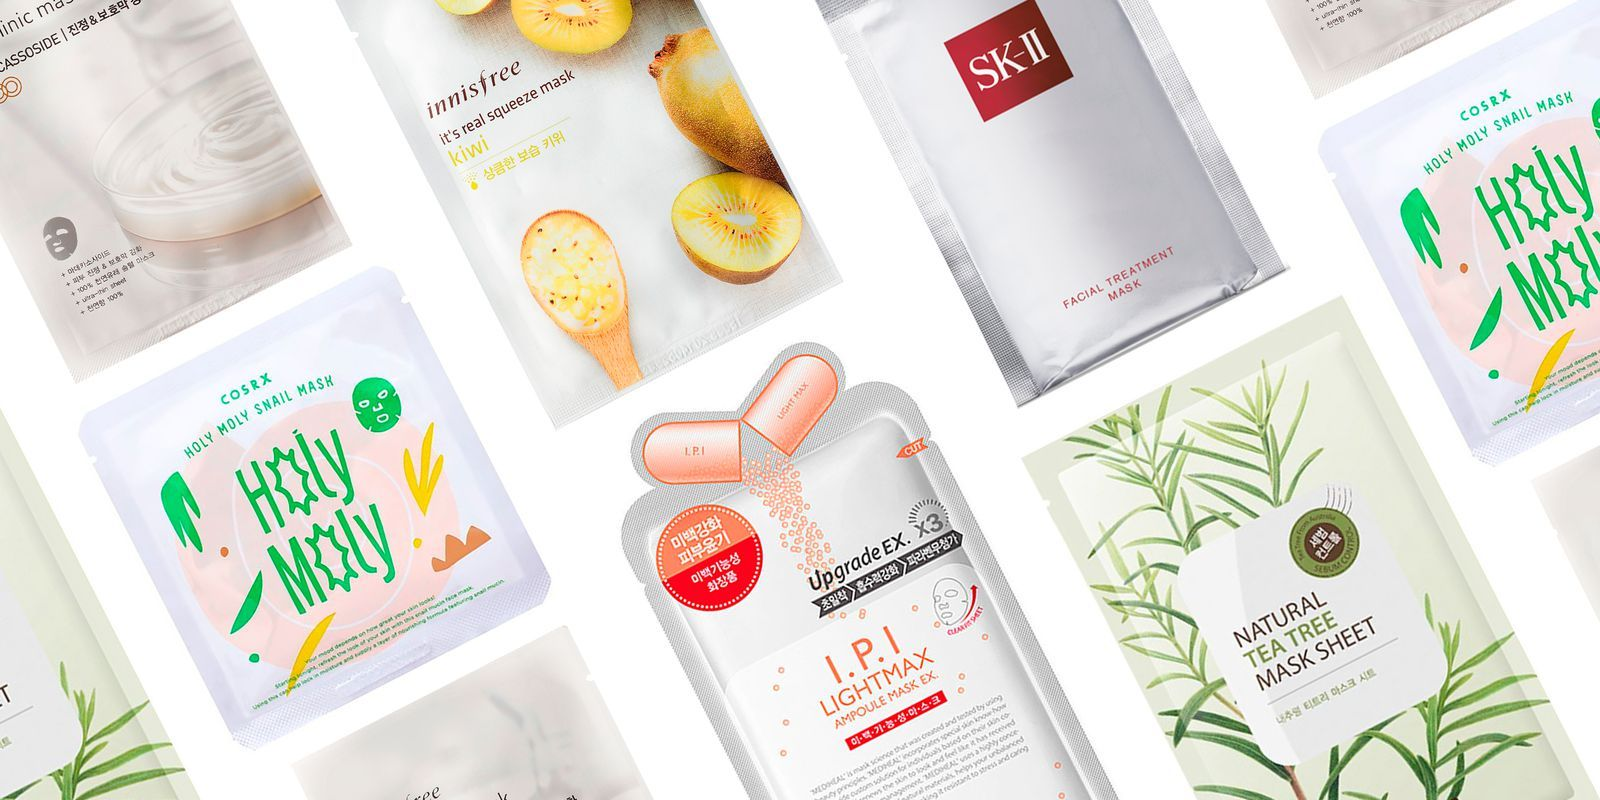 These are the 7 best sheet masks, according to Reddit | Best beauty